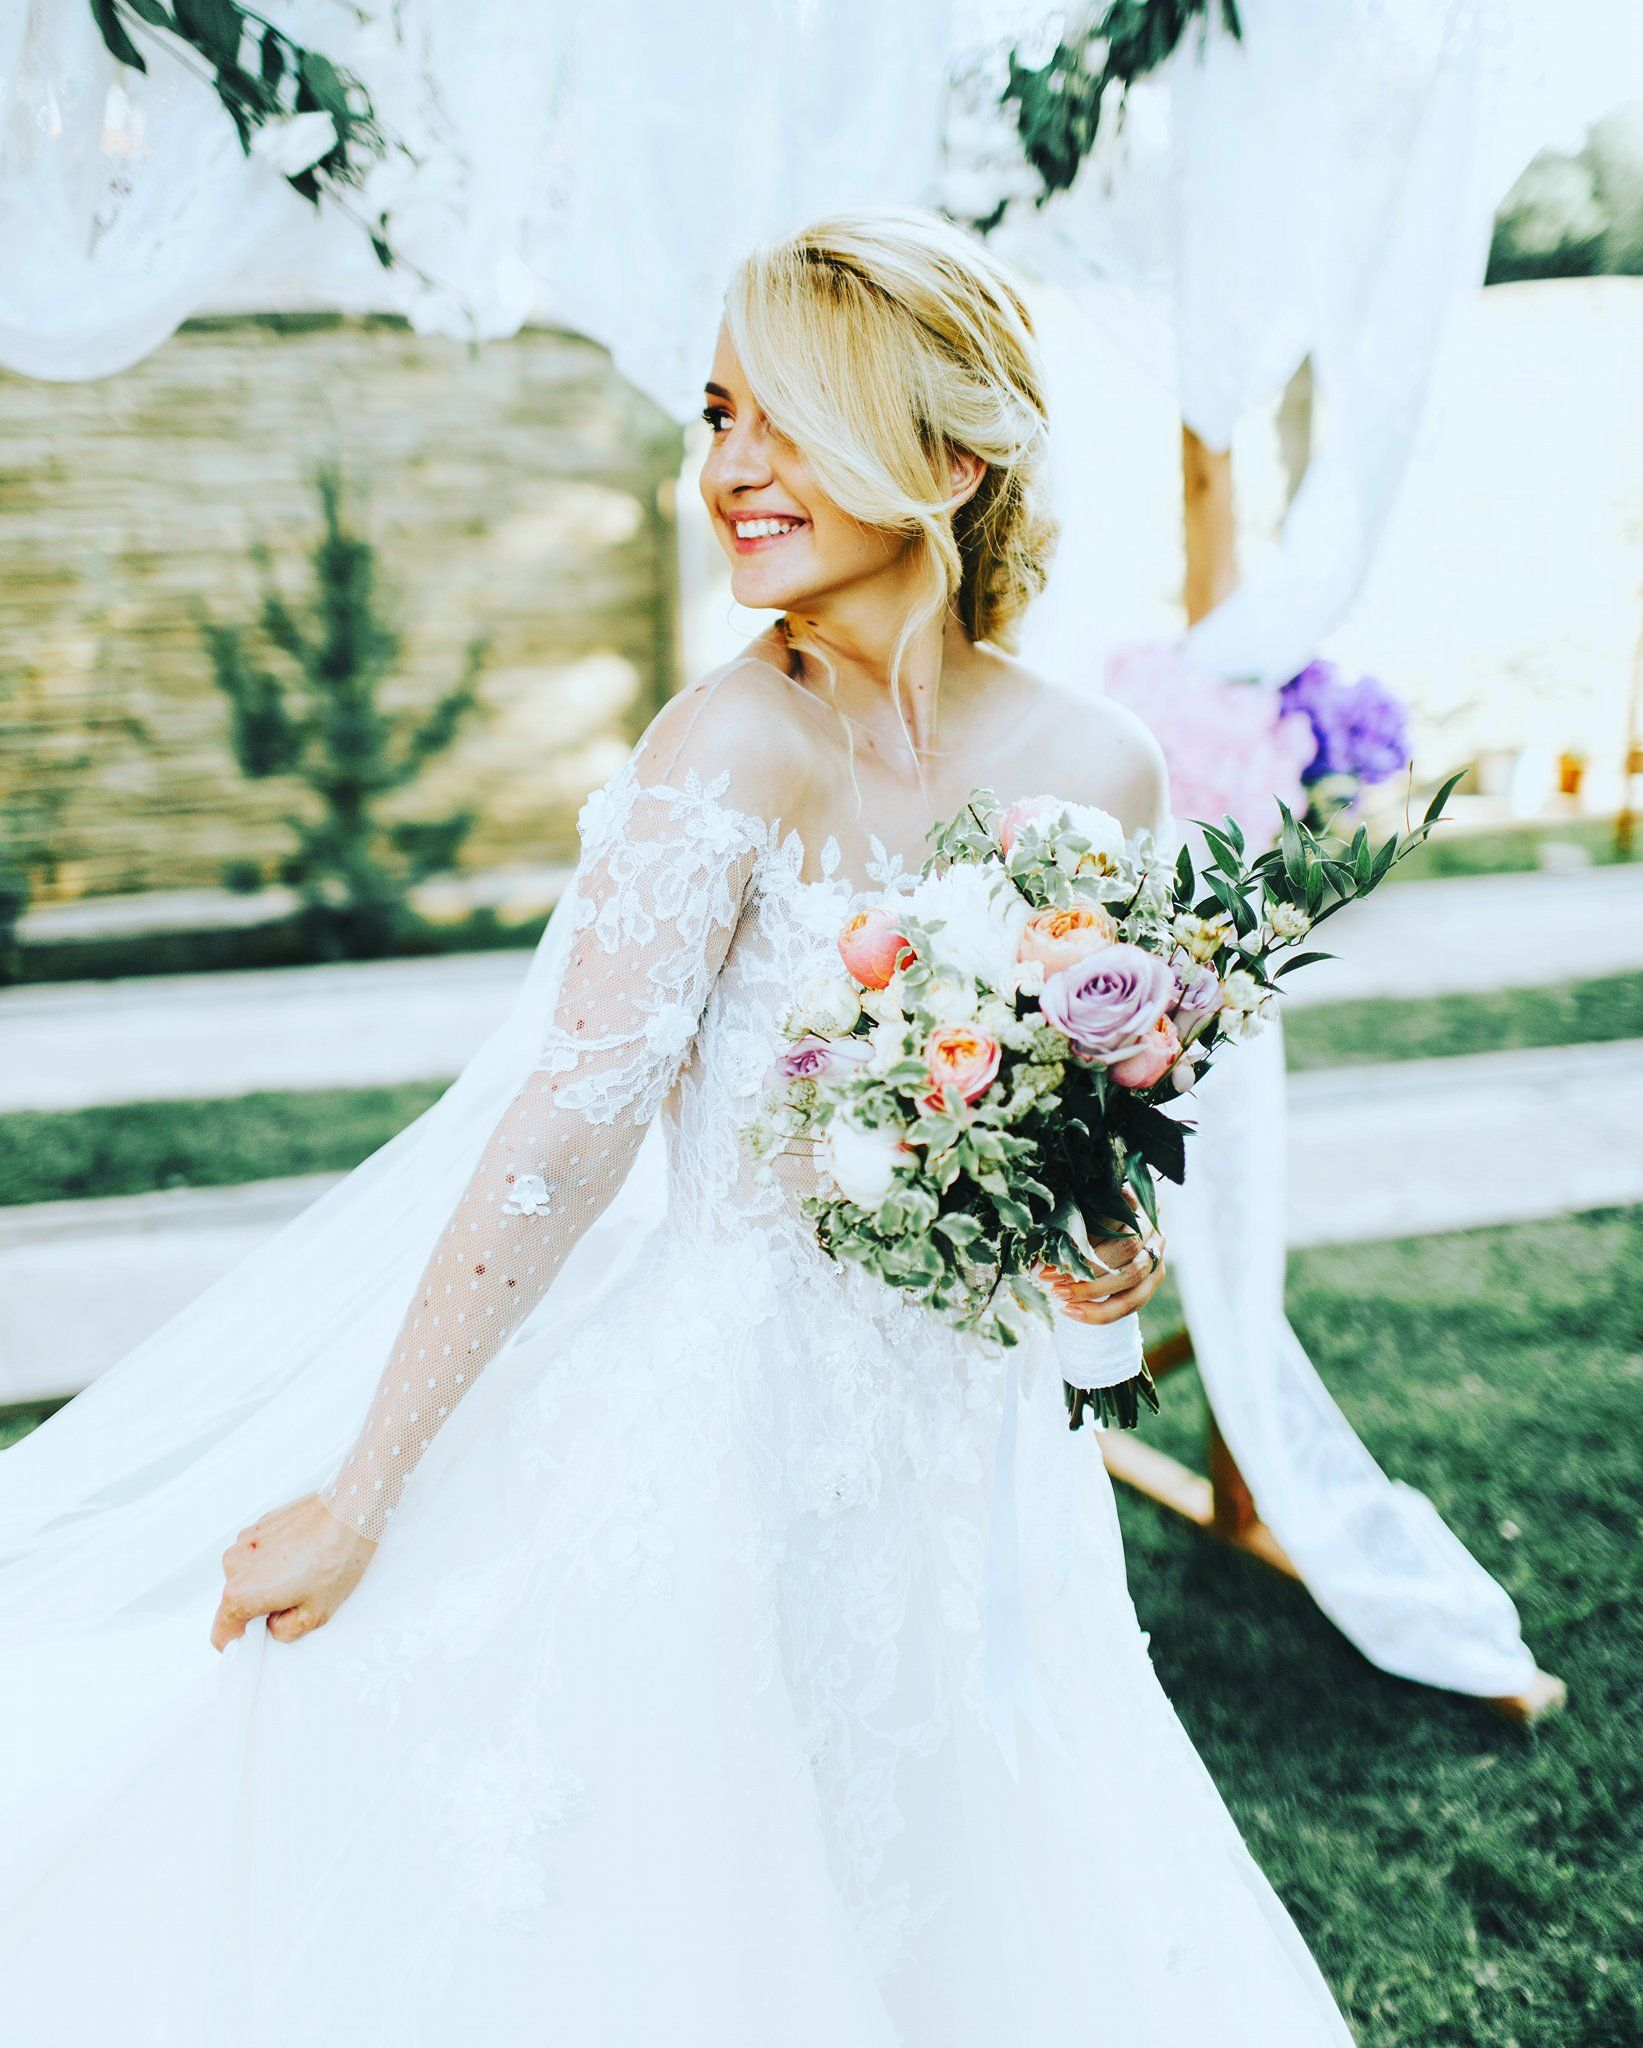 We absolutely love our beautiful and happy brides!